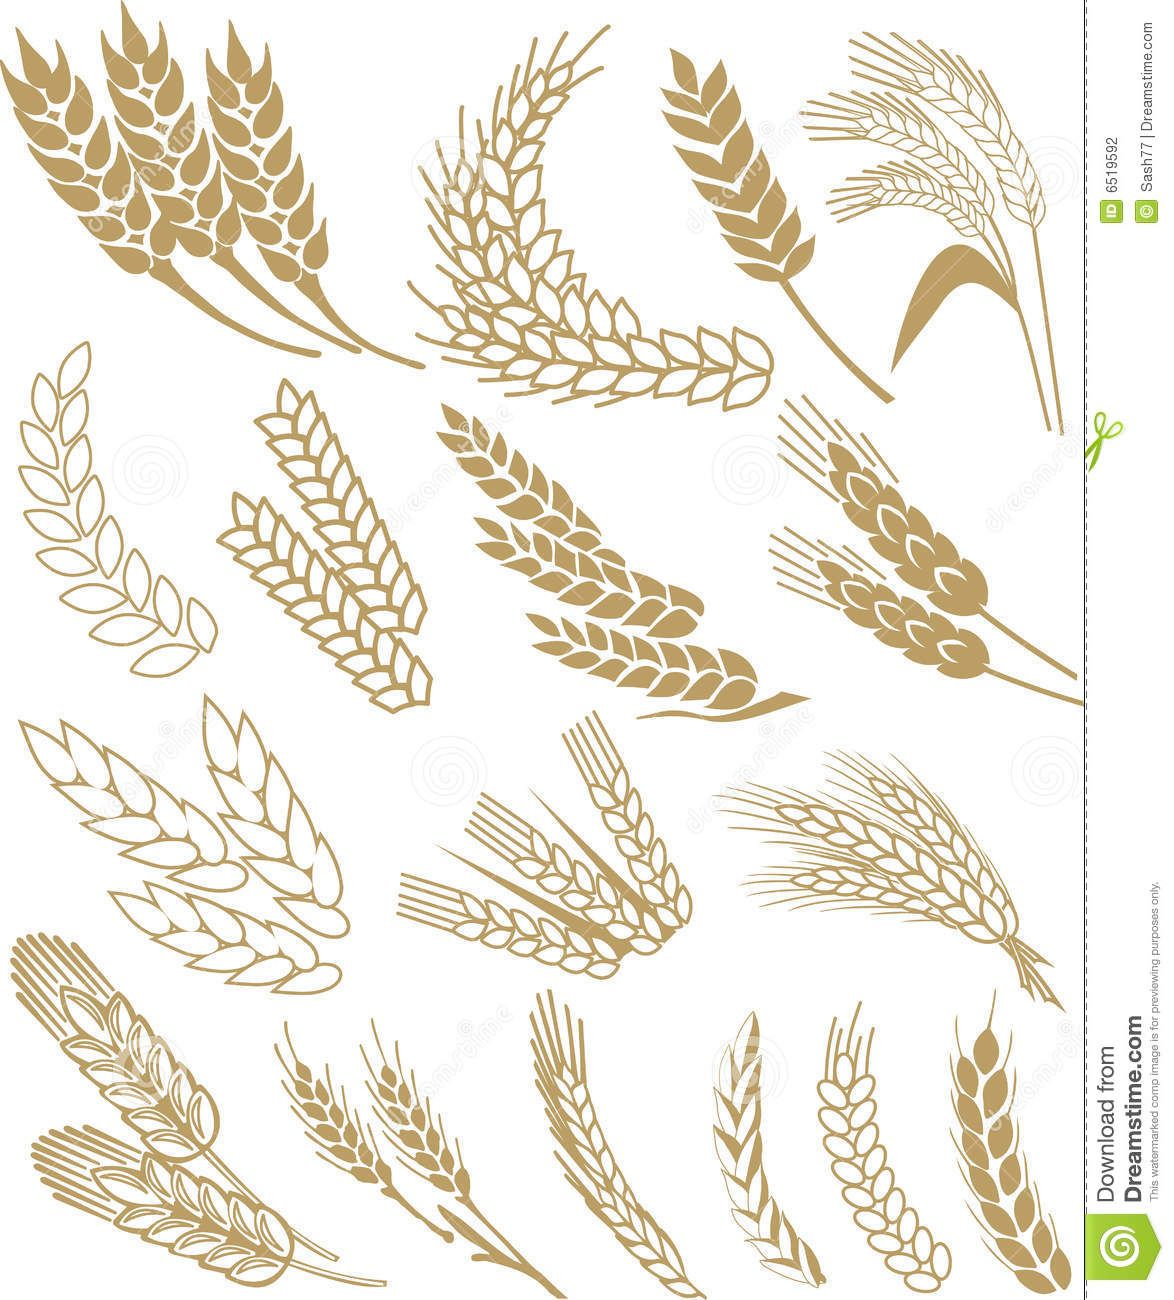 Wheat Vector - Download From Over 56 Million High Quality ...